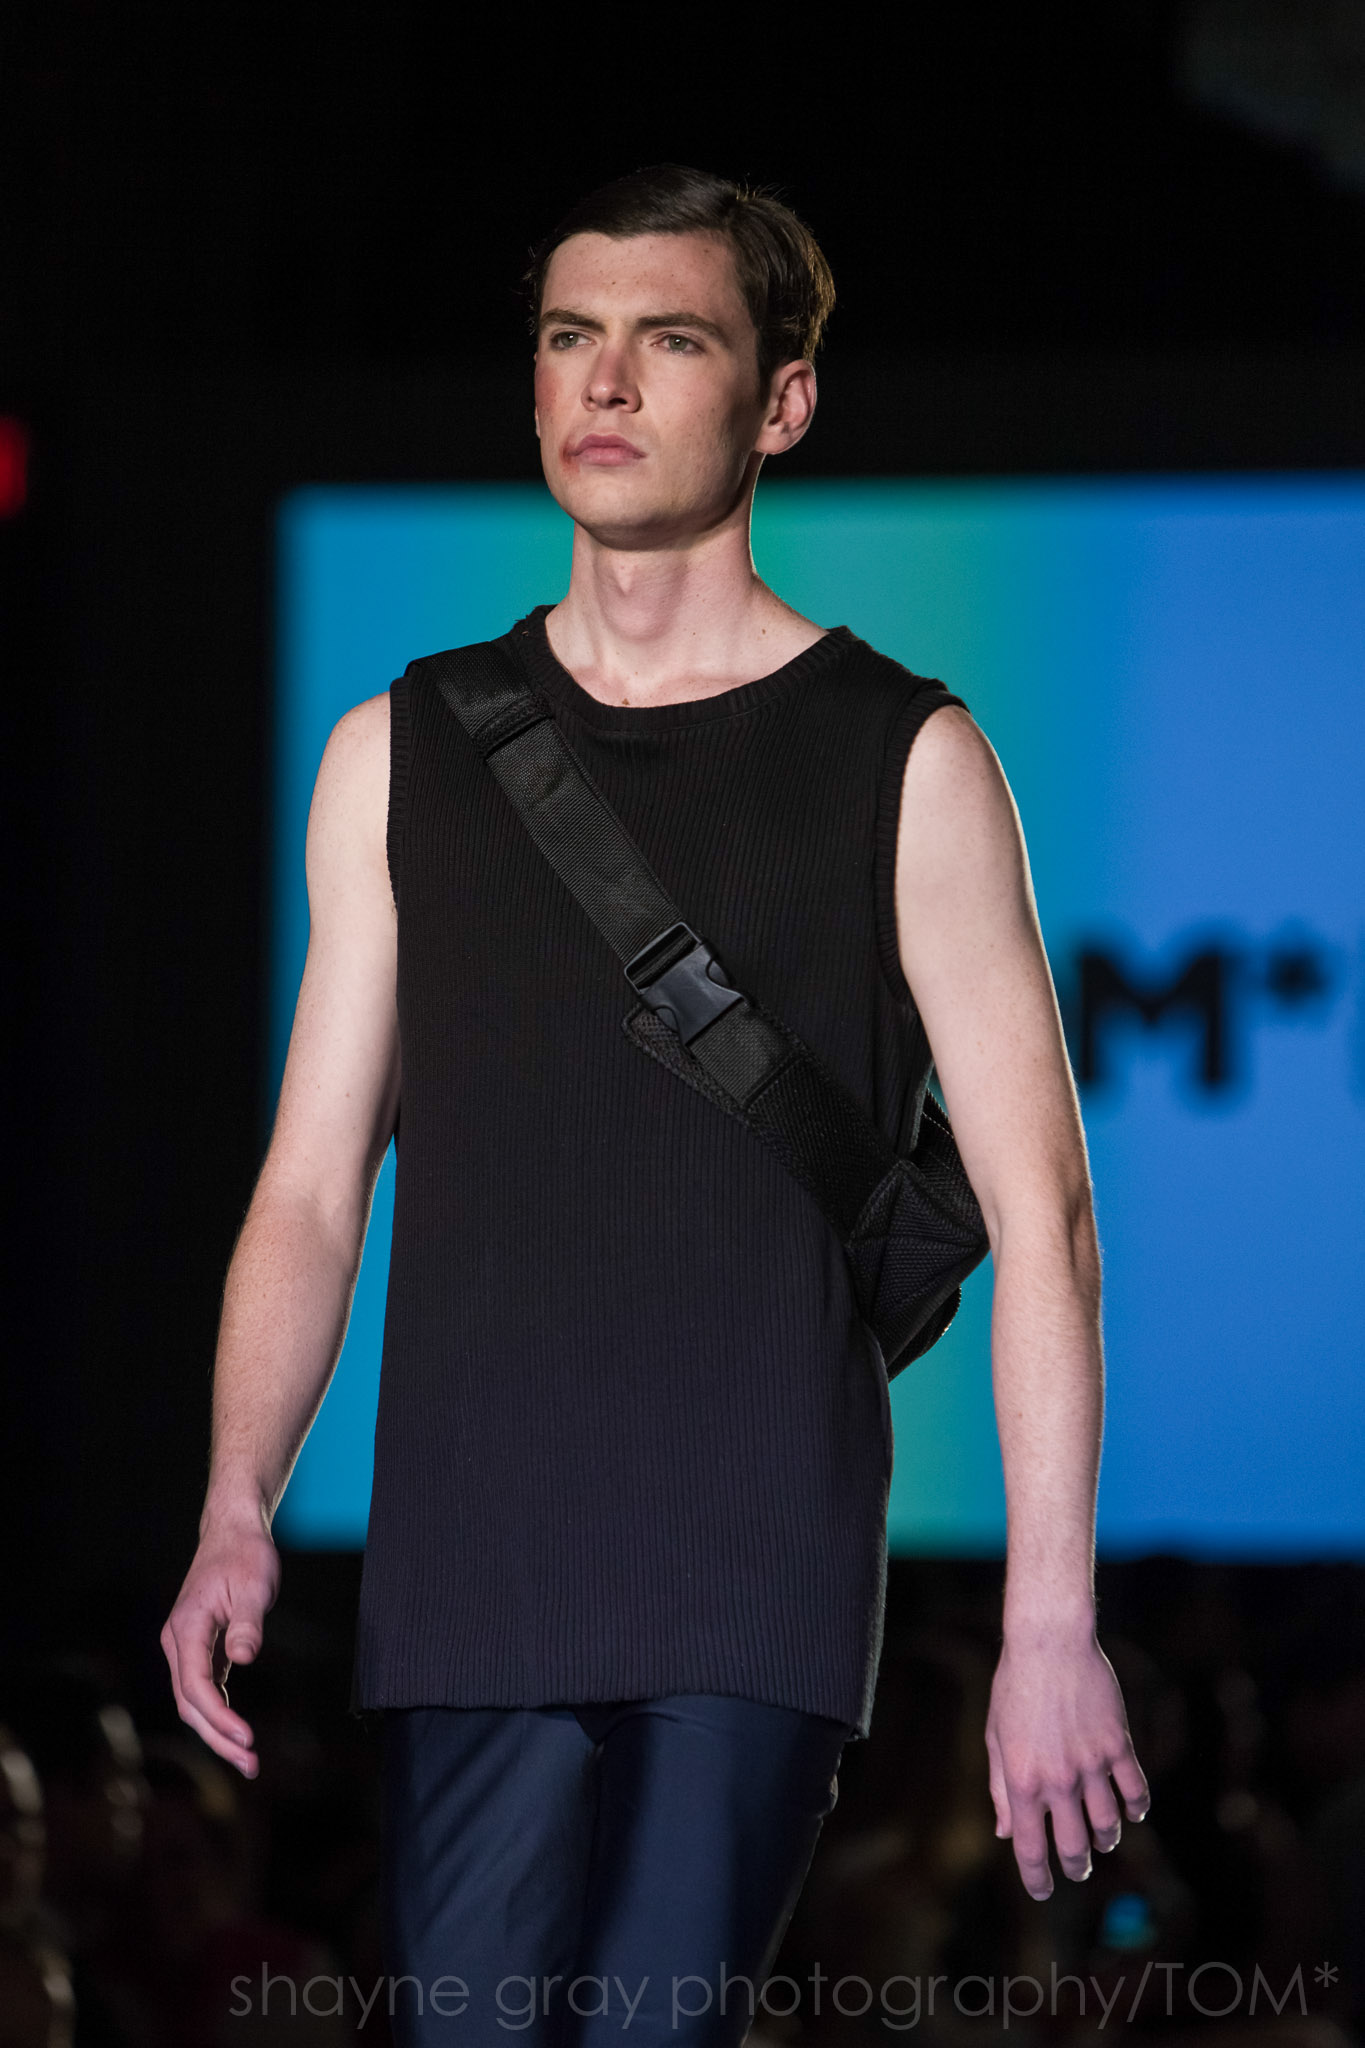 Shayne-Gray-Toronto-men's-fashion_week-TOM-lafaille-7547.jpg